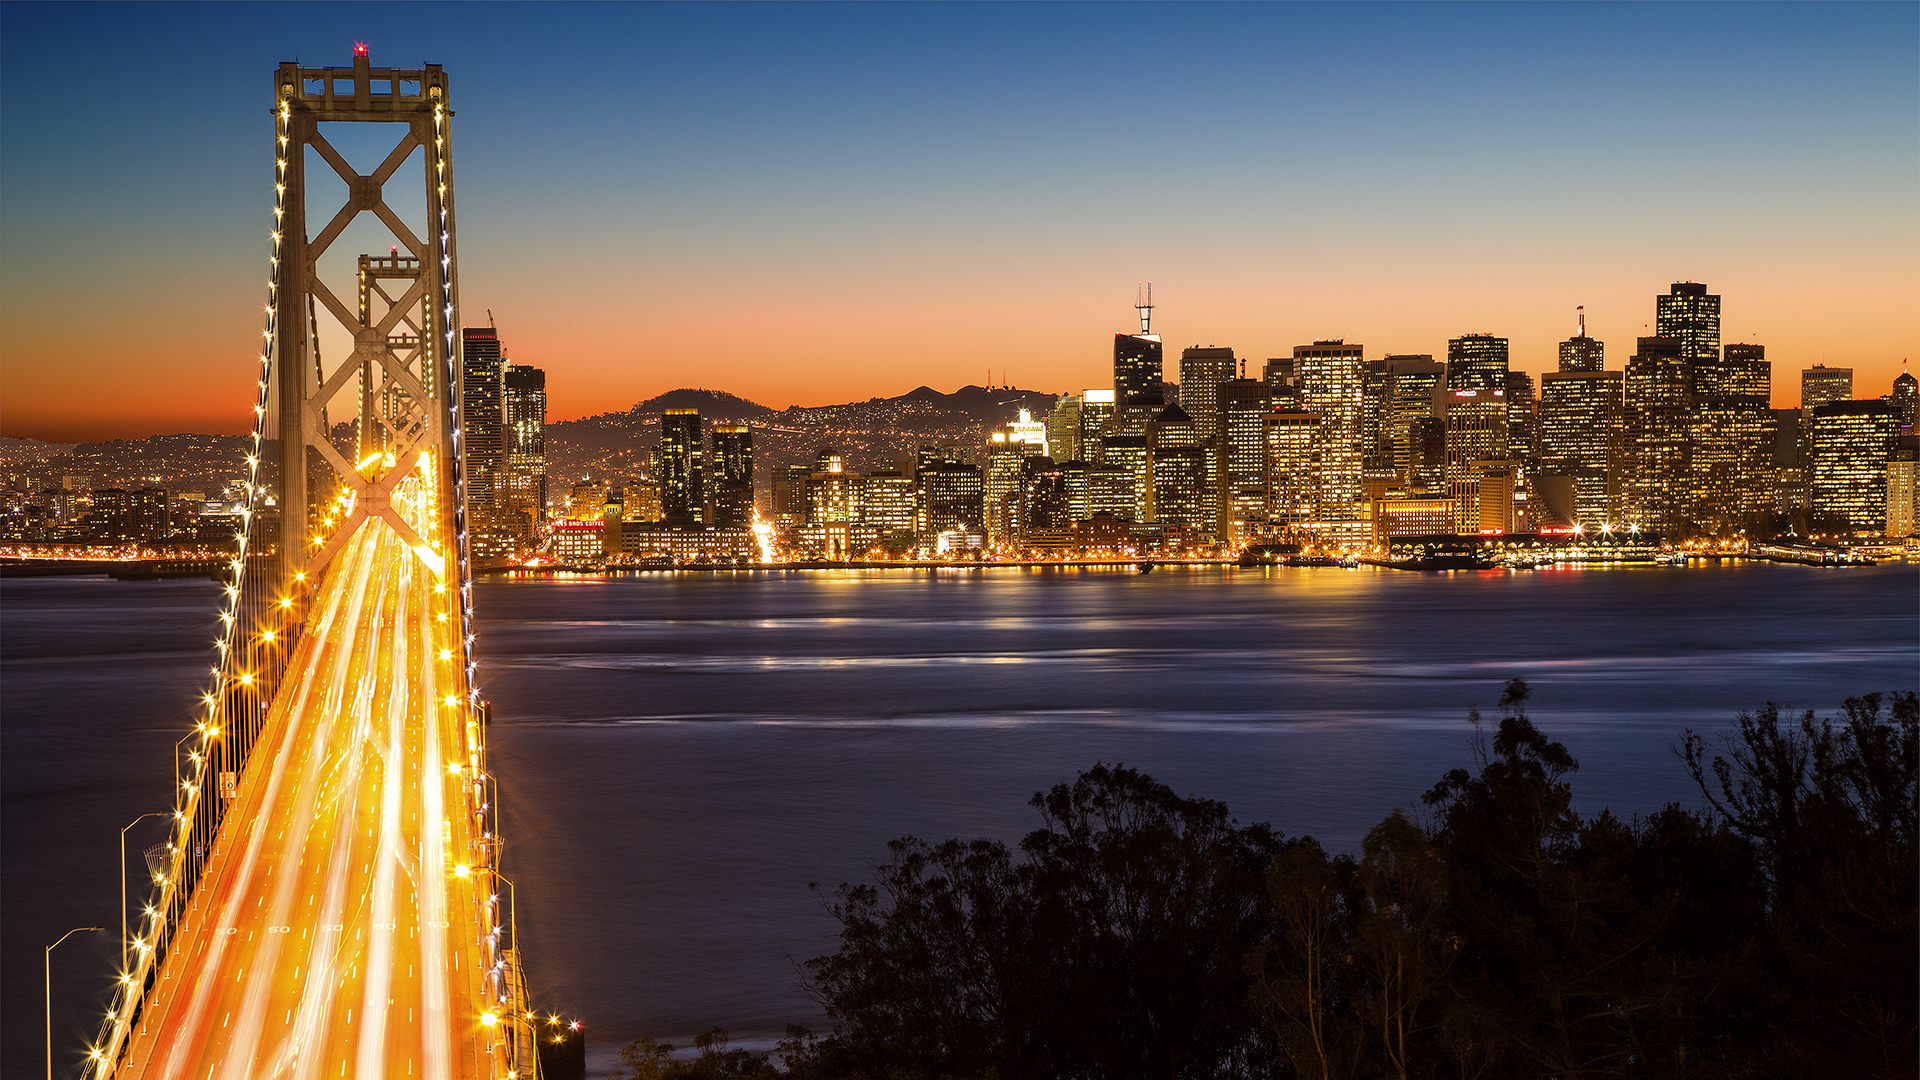 sanfranciscoatnight_1920x1080